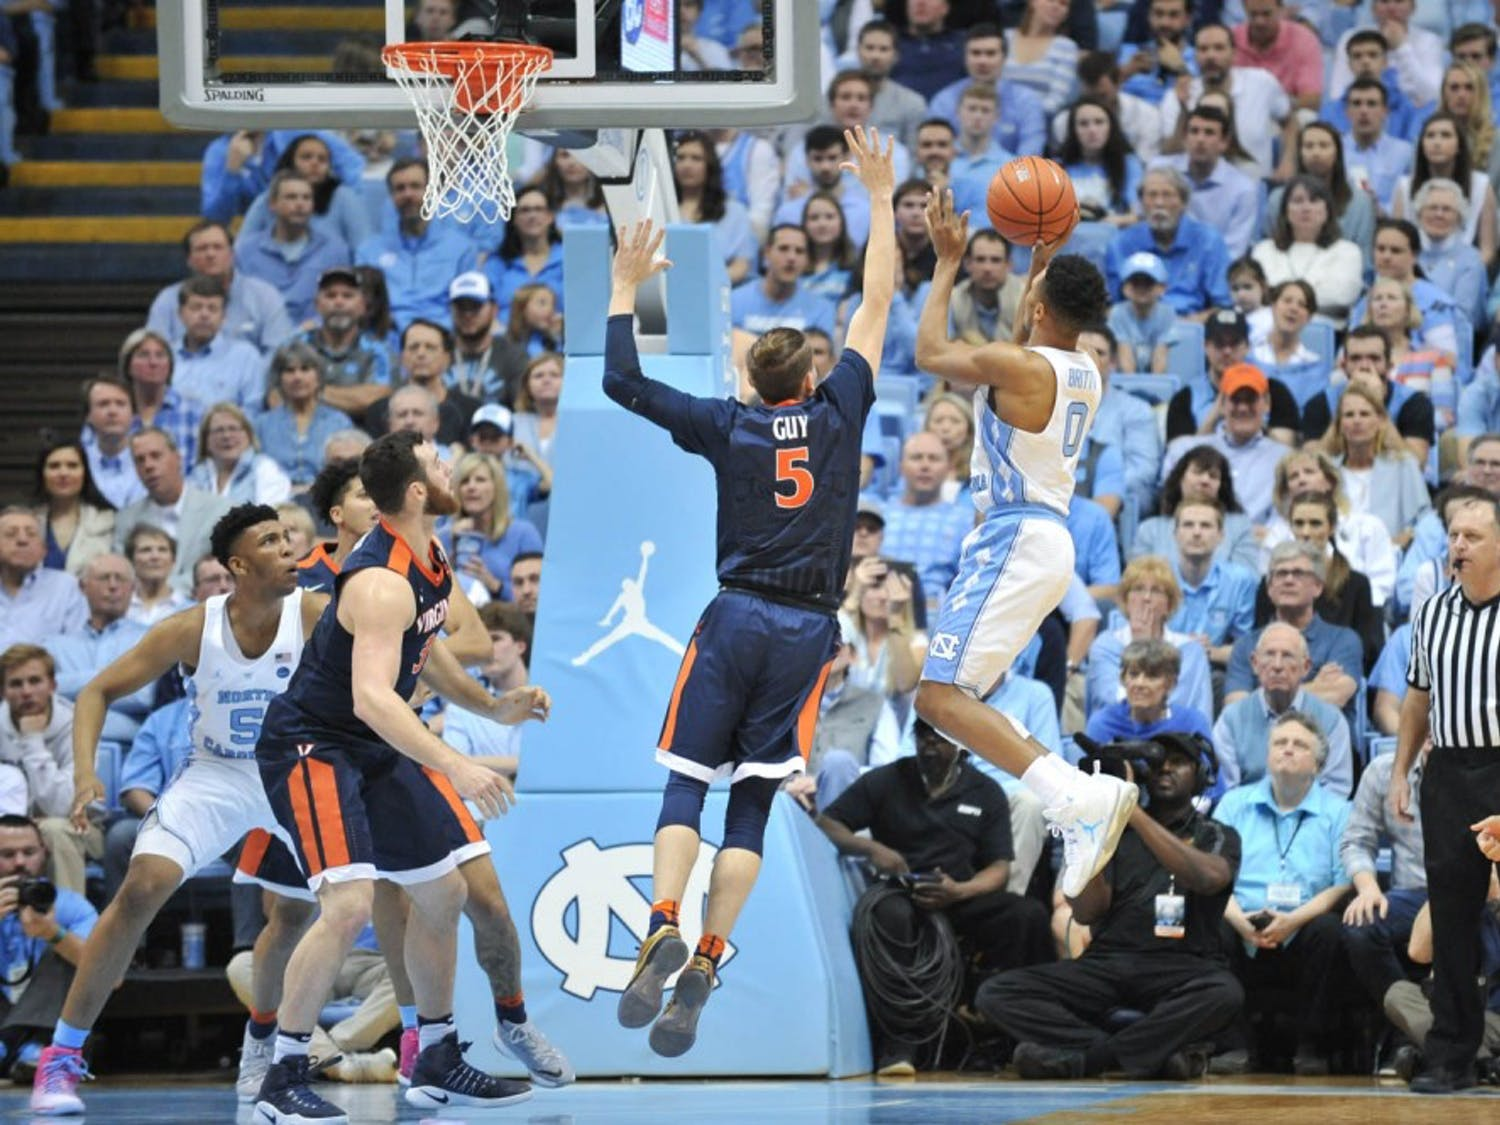 Senior Nate Britt (0) goes up for a shot against a UVA defender on Saturday night.